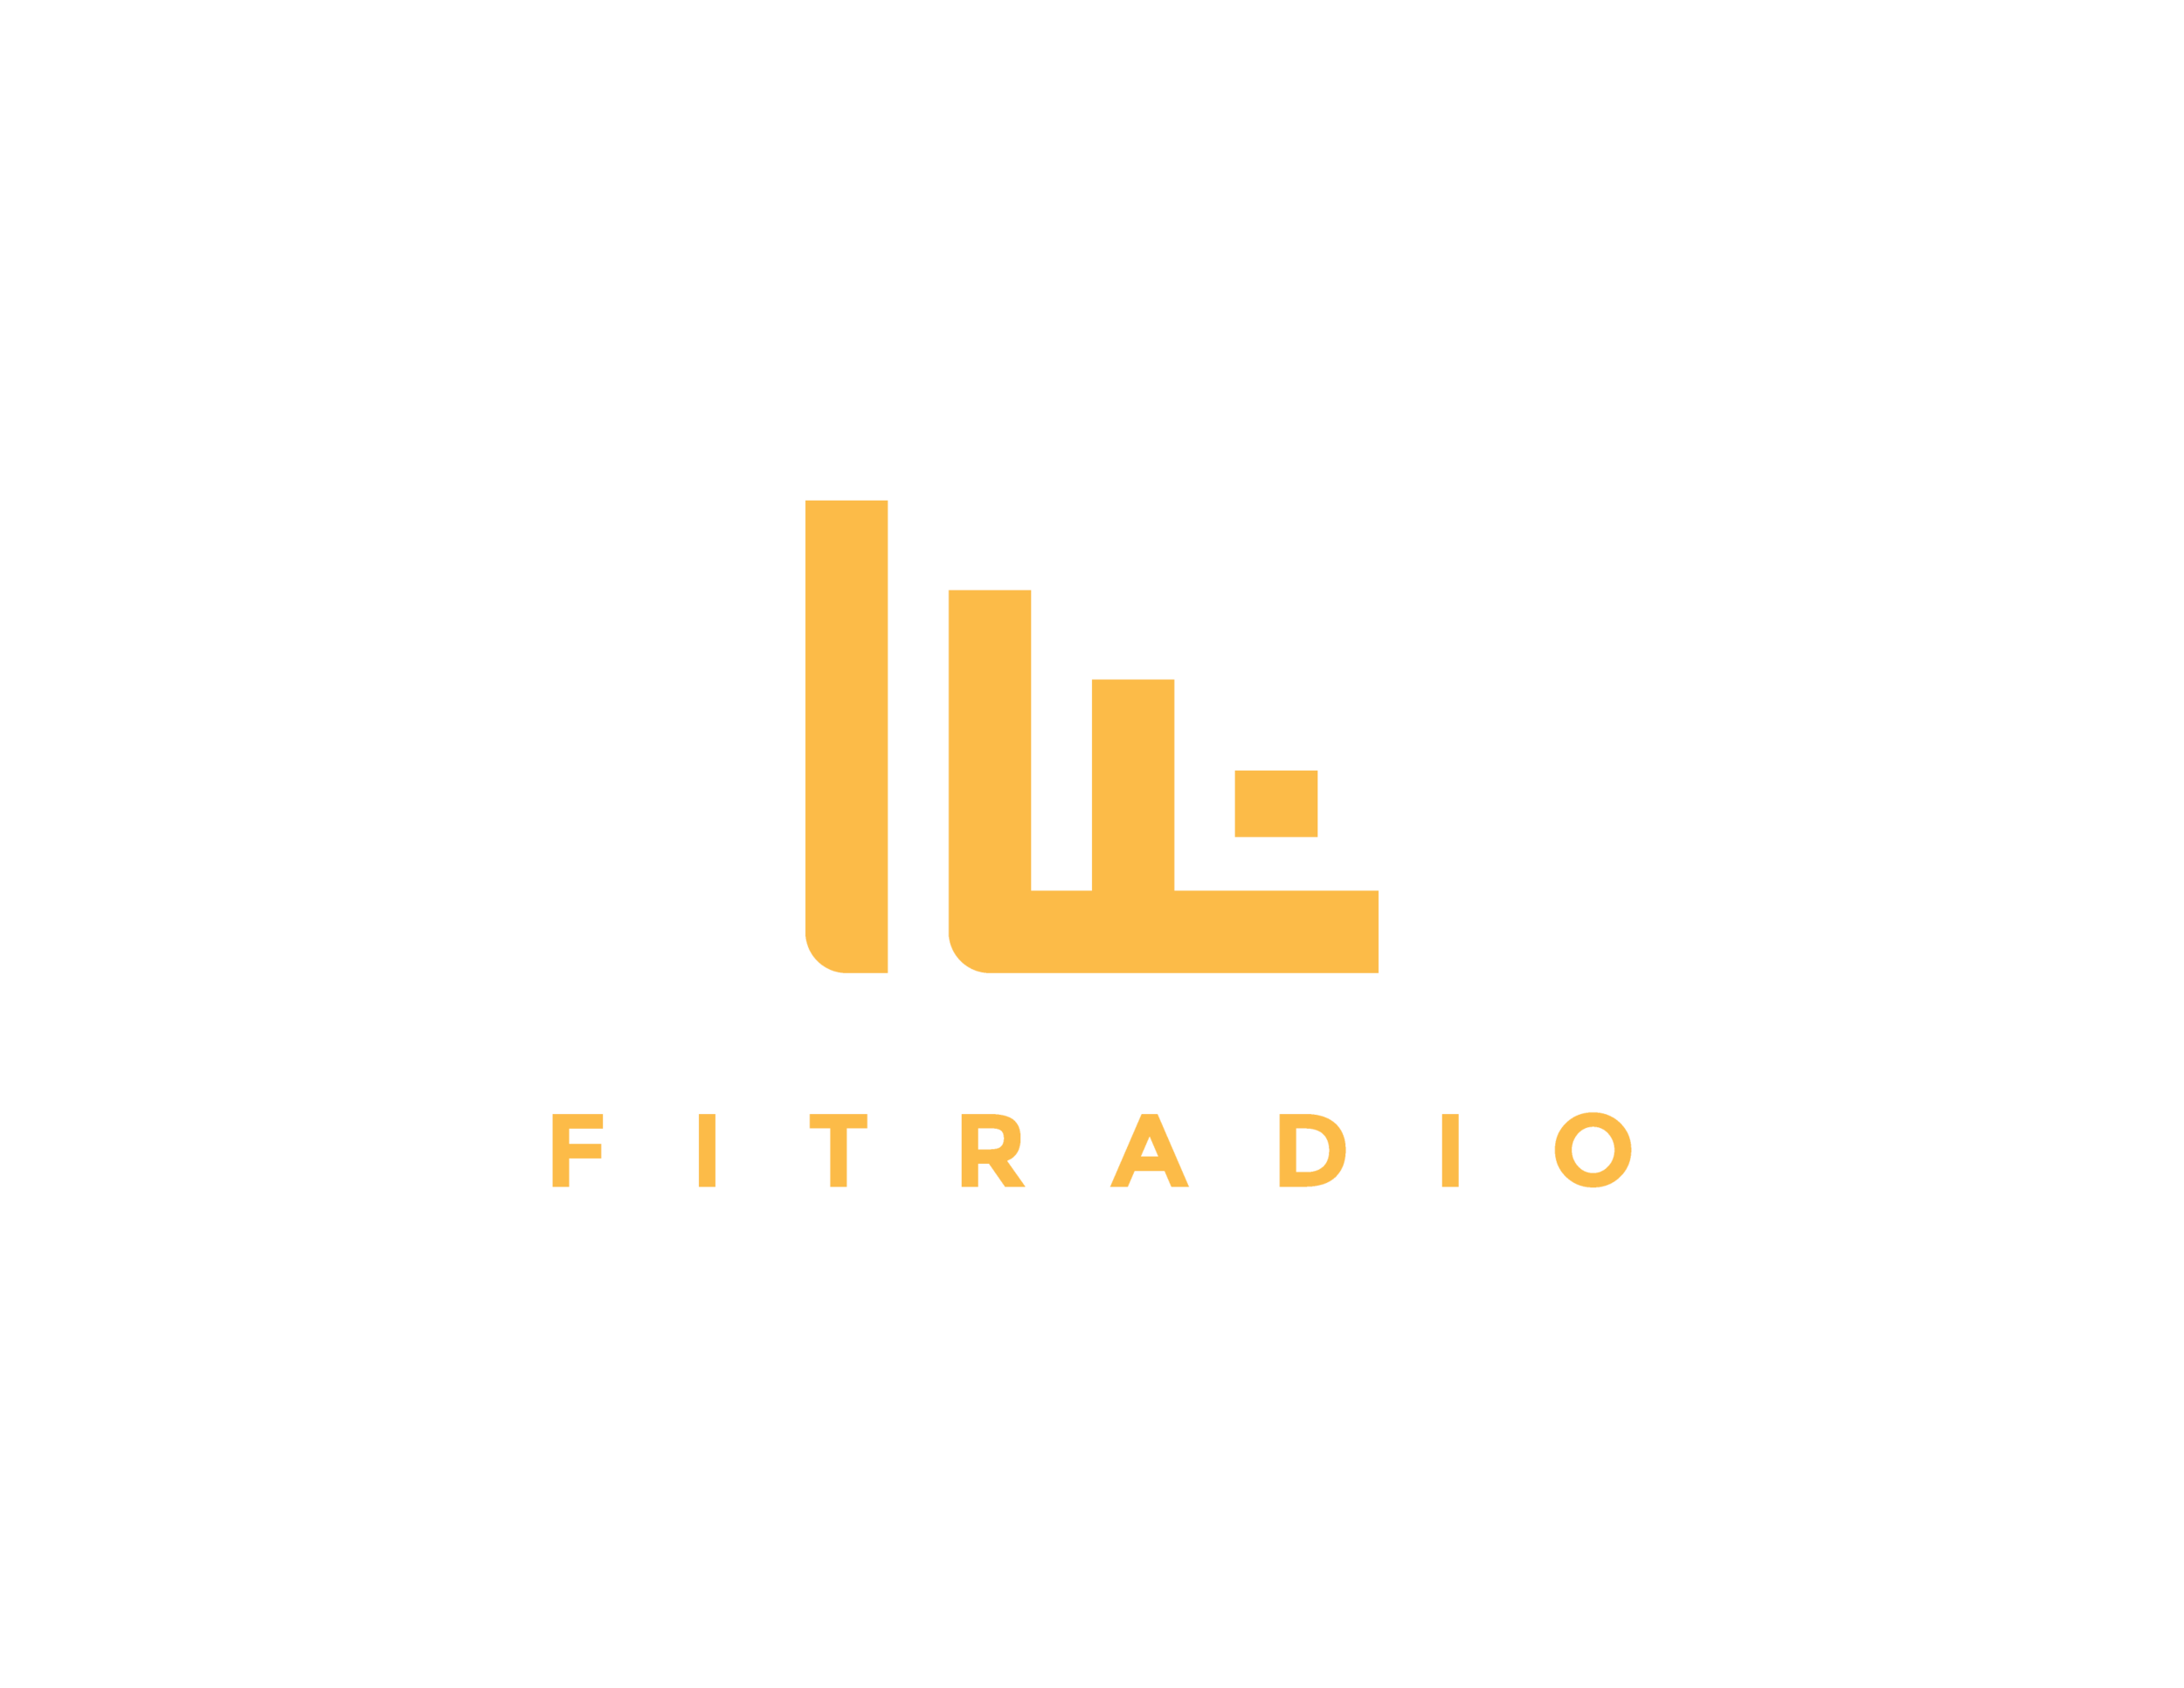 FITRadio Logo_Final Orange-Transparent.png